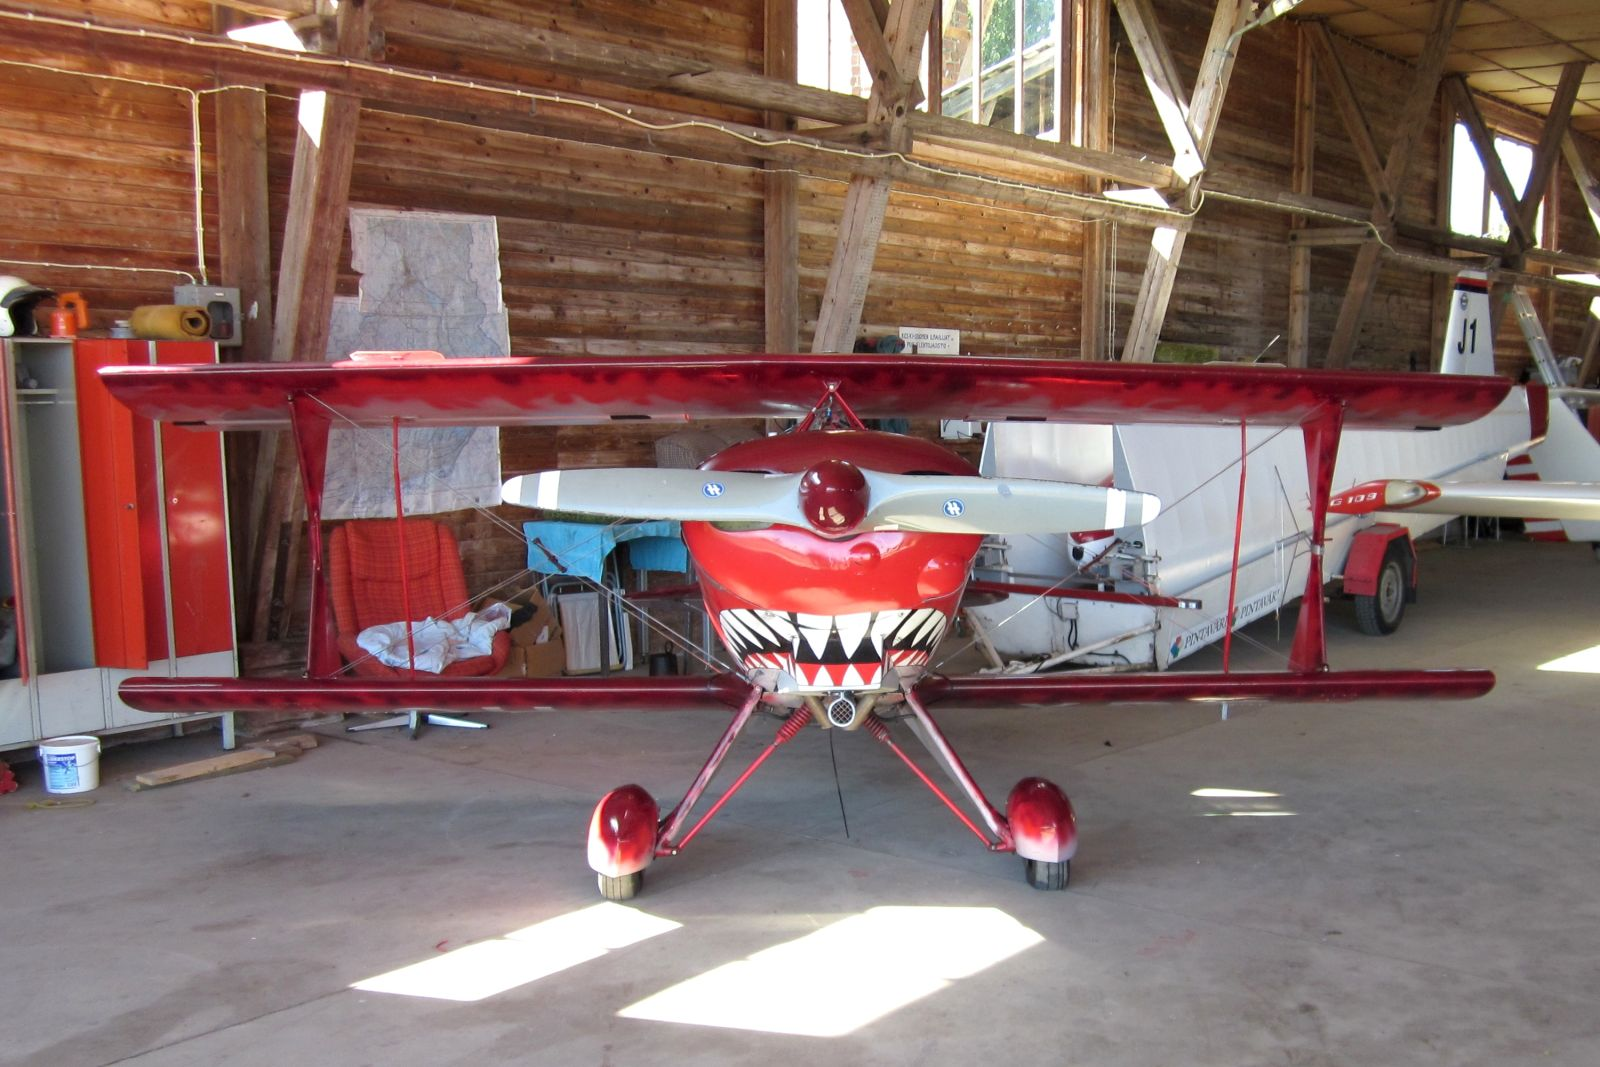 Pitts S-1 Special OH-XPF EFPK 2011-07-31